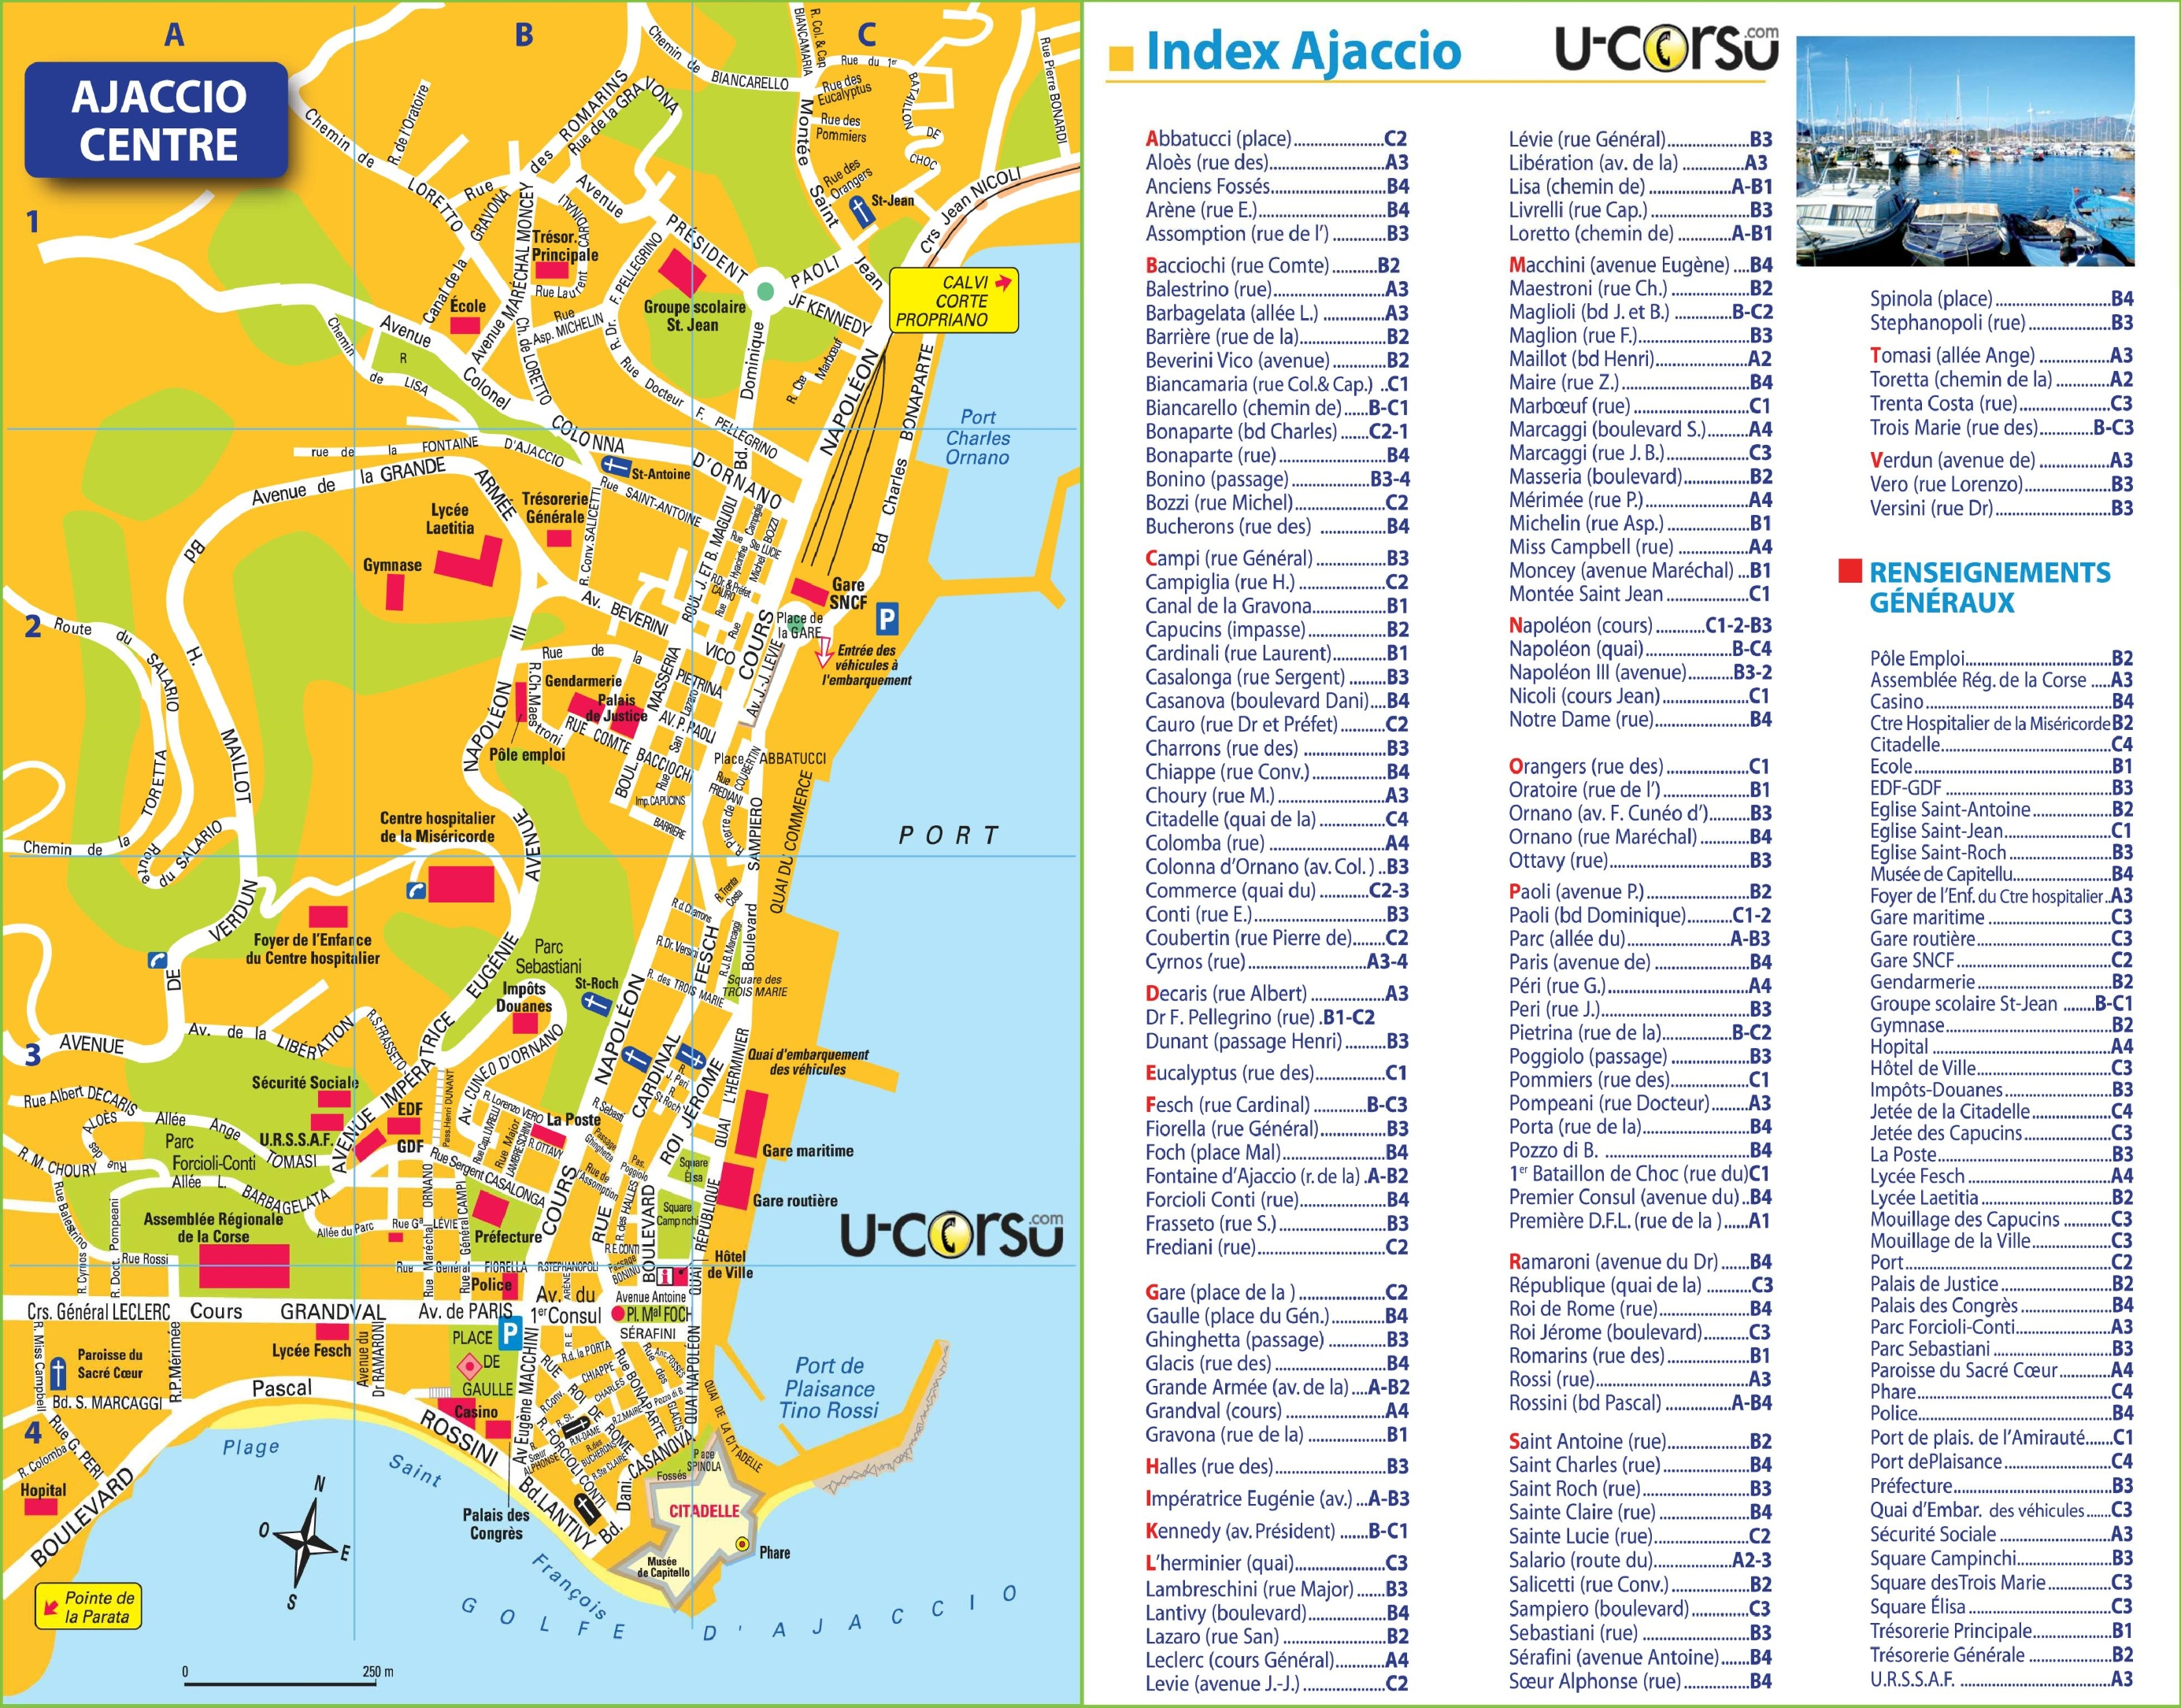 Ajaccio city center map